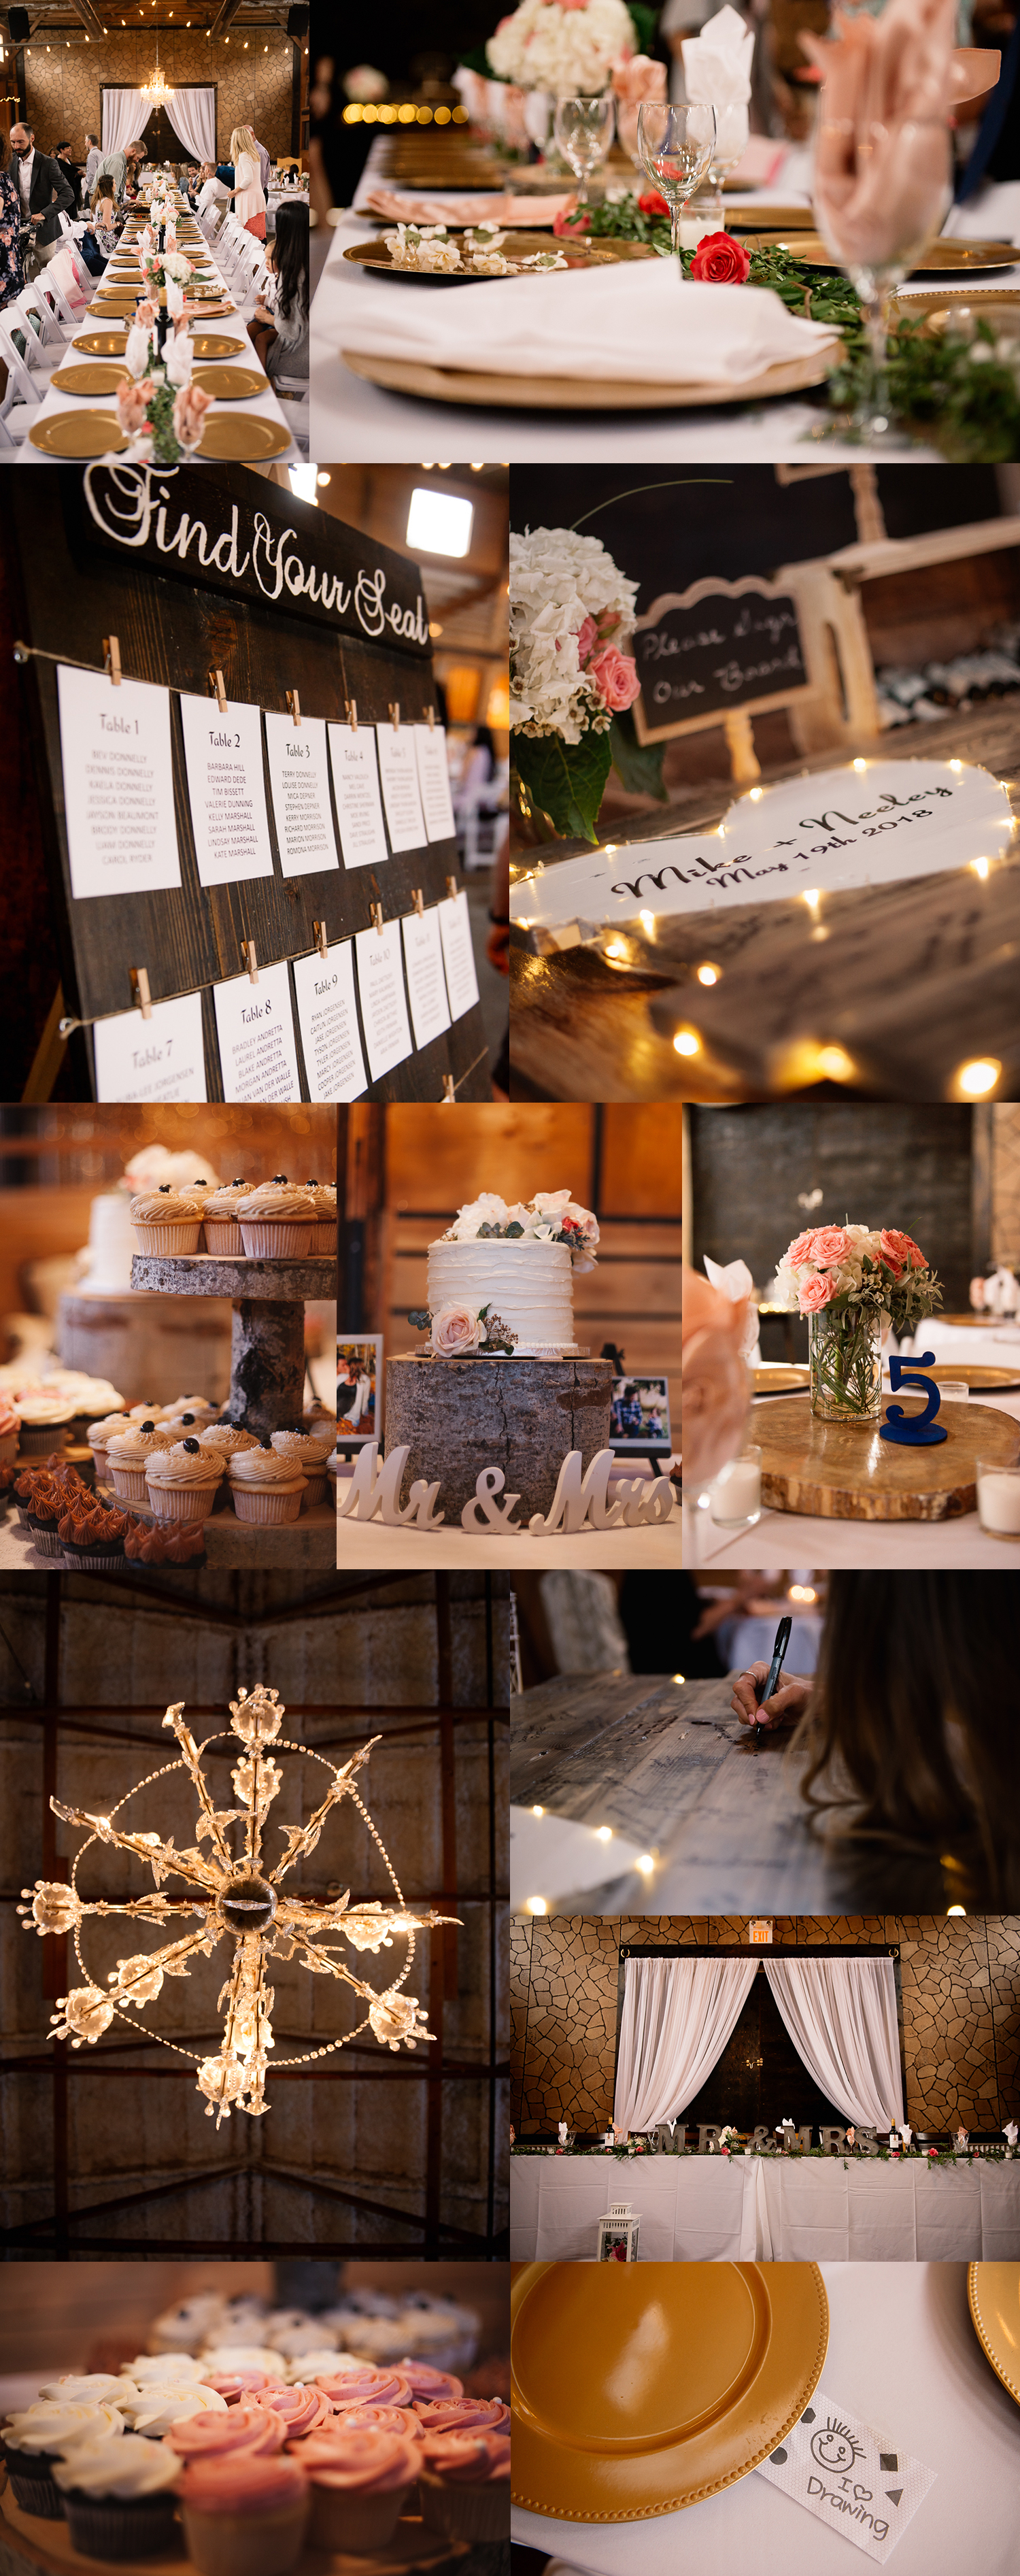 Mike-&-Neeley-Reception-details.jpg